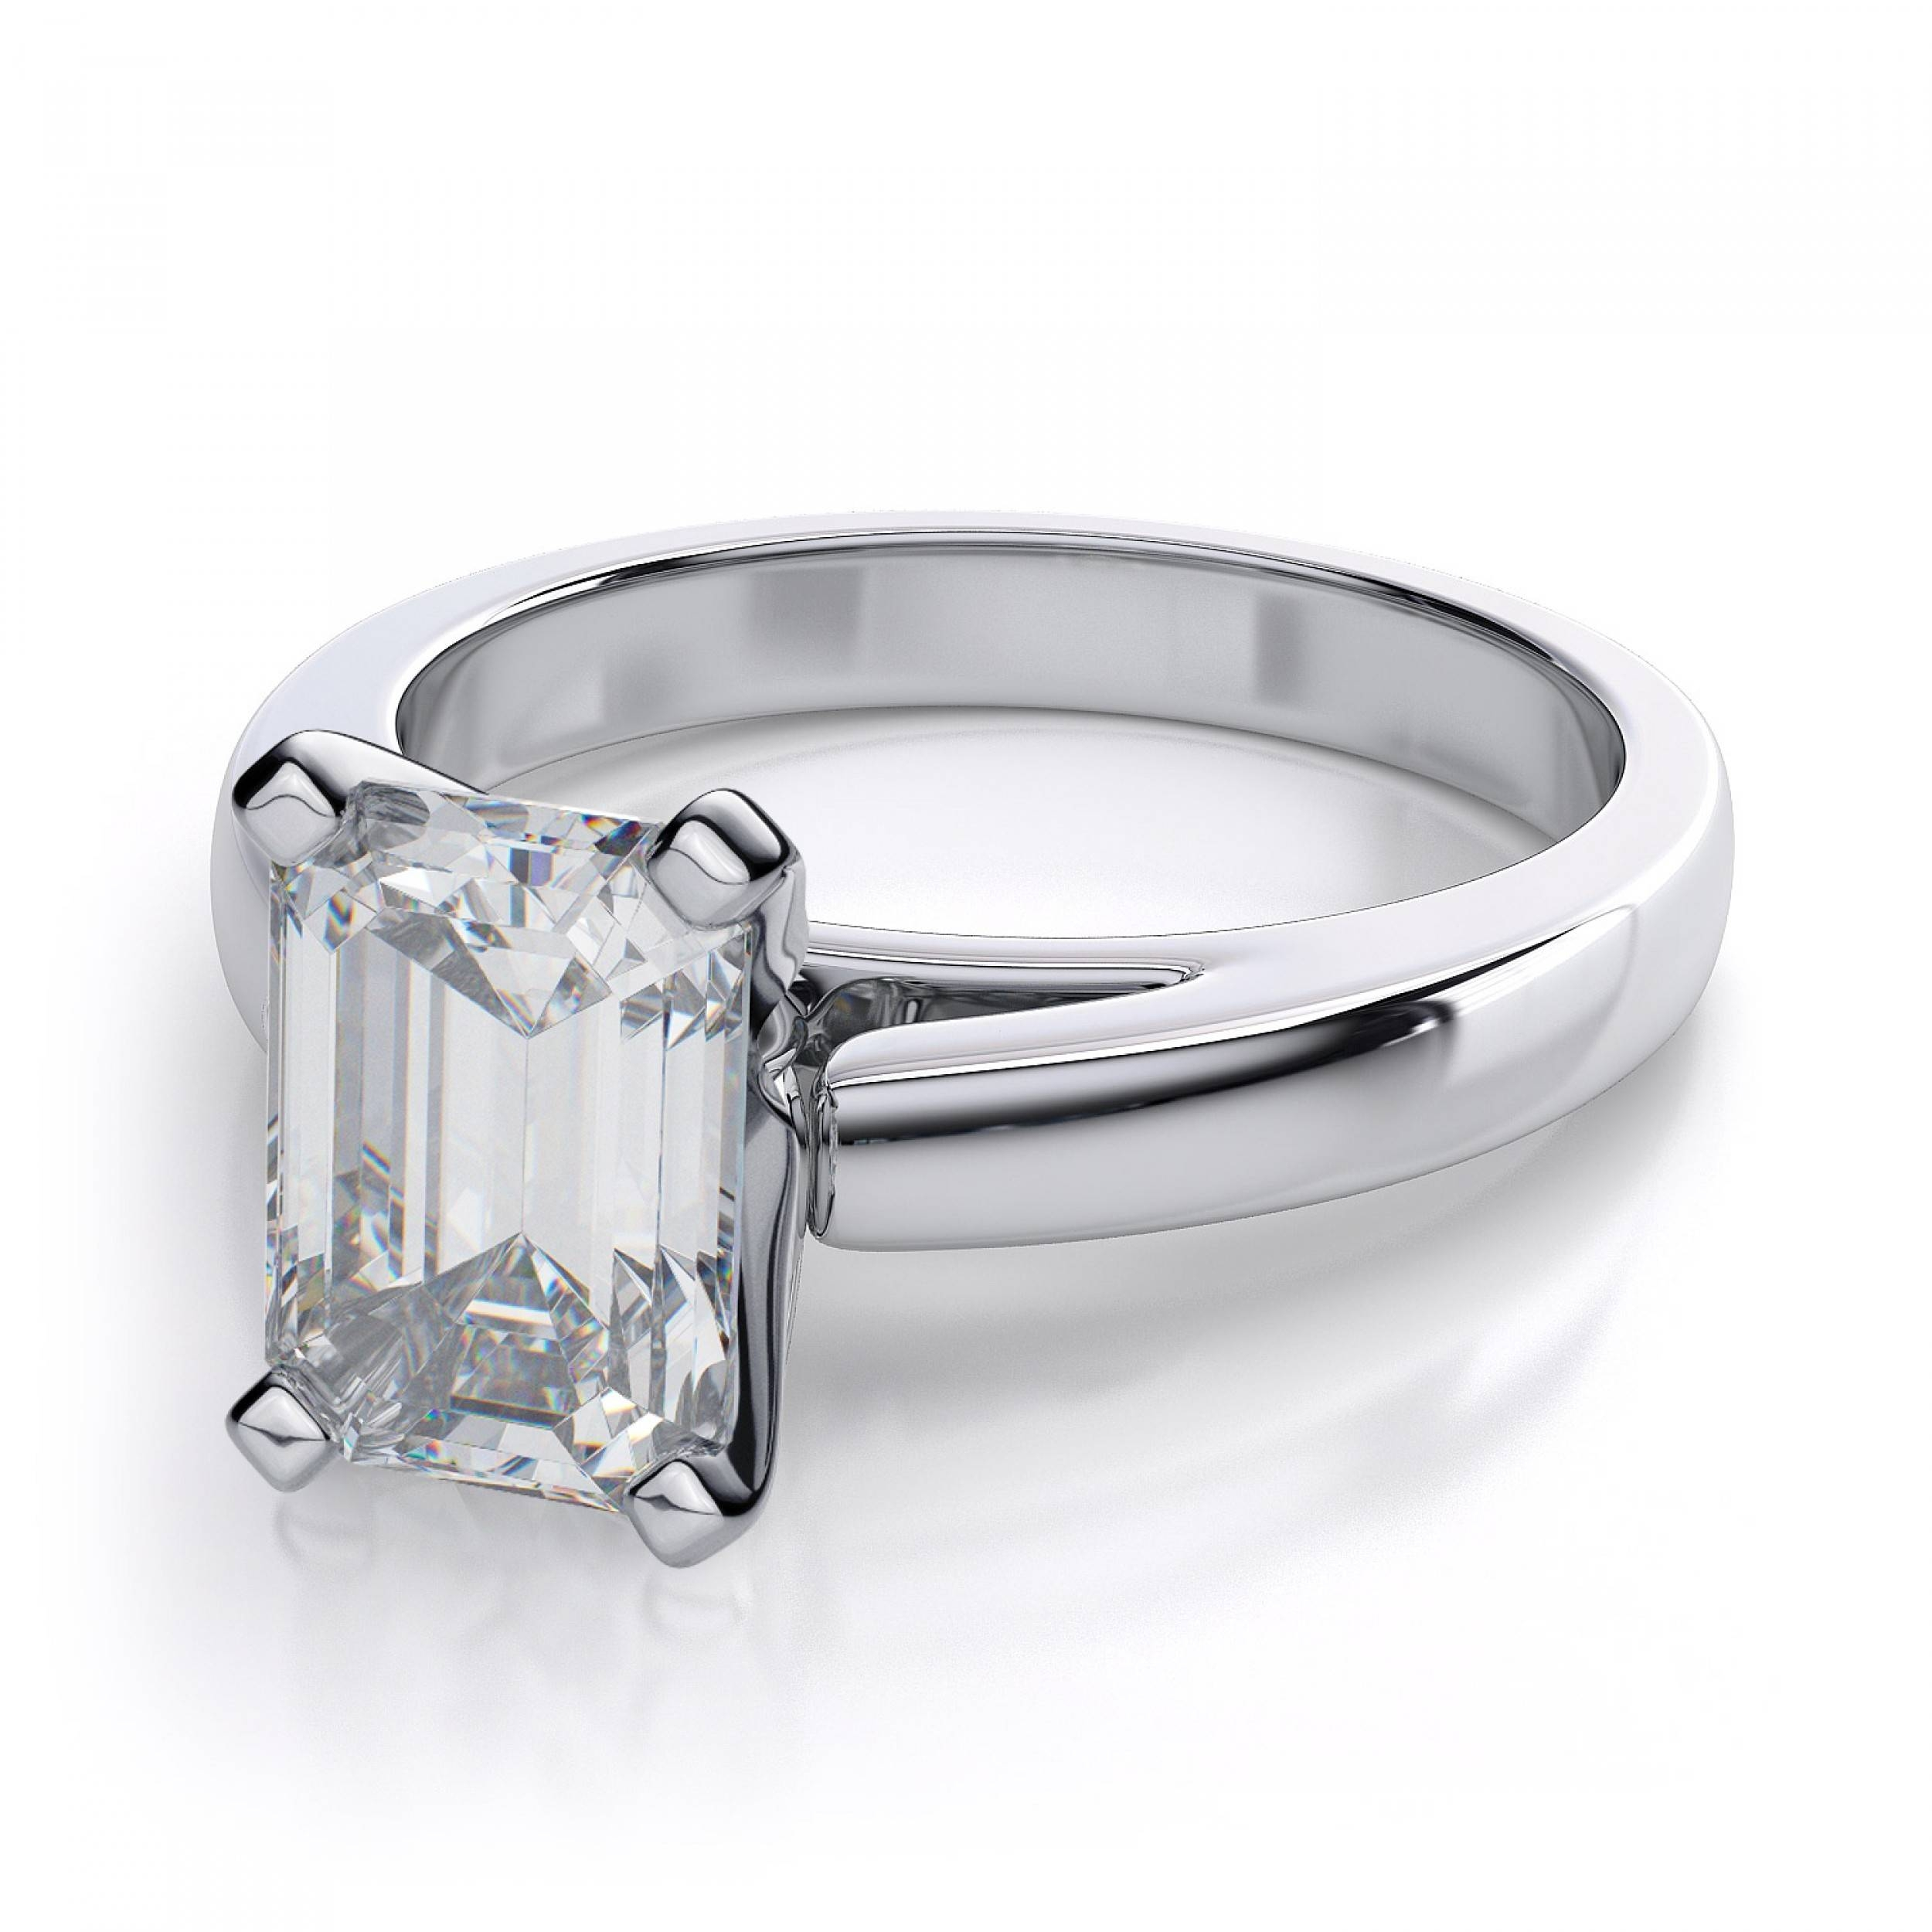 Emerald Cut Solitaire Engagement Ring – 14K White Gold Regarding White Emerald Engagement Rings (View 10 of 15)